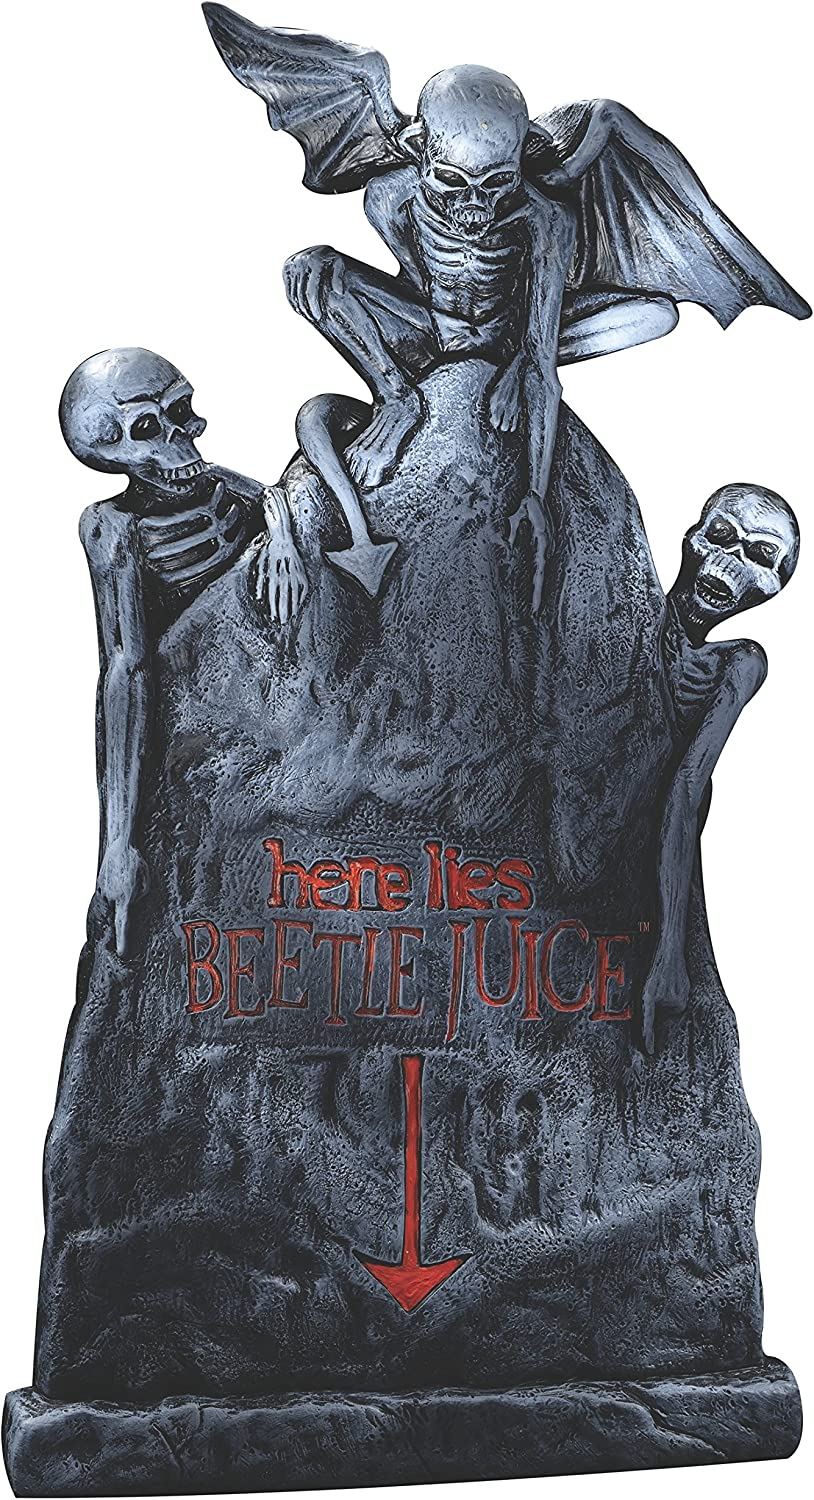 Rubies Beetlejuice Tombstone Decor, Small